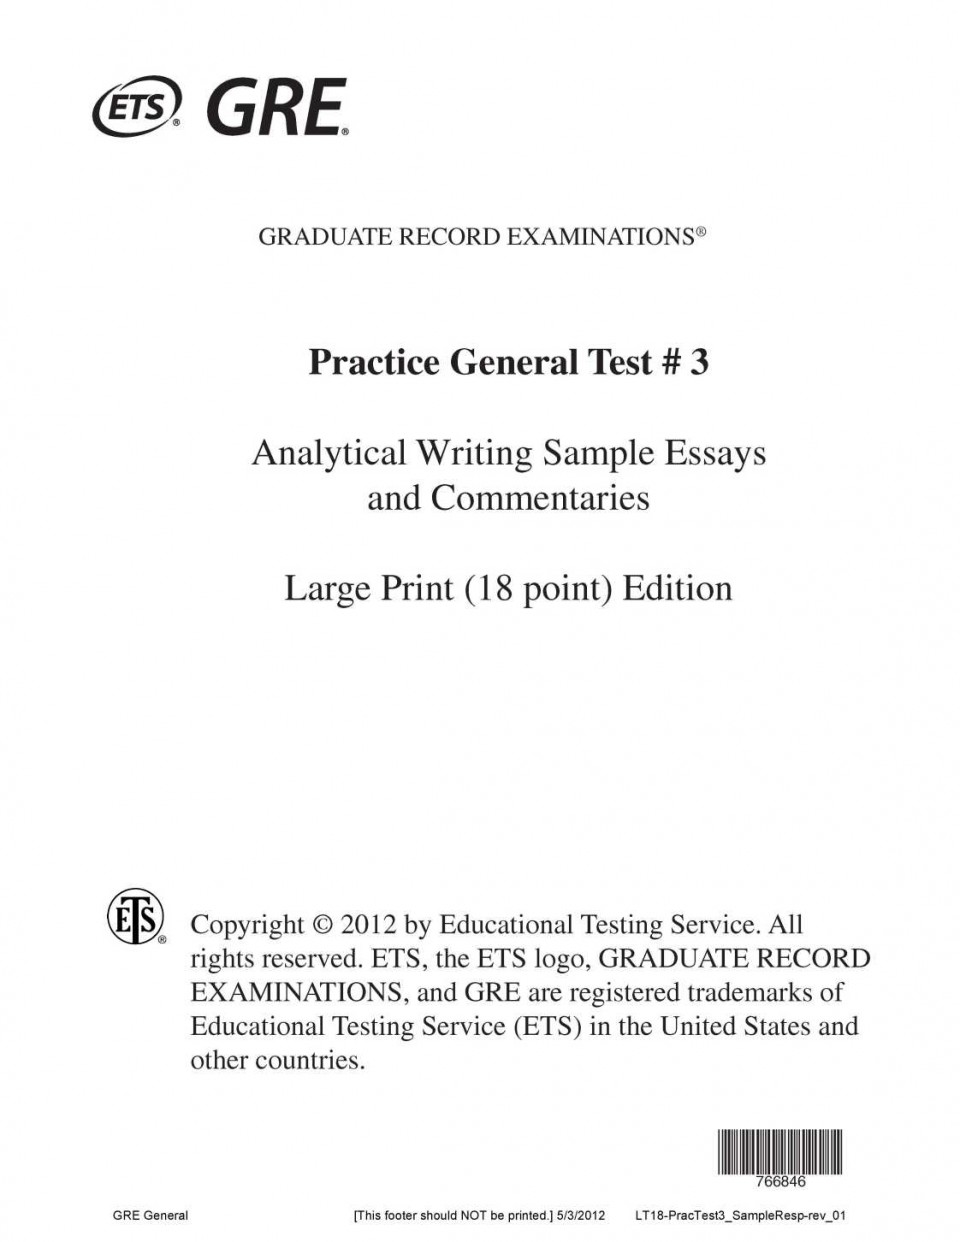 006 Toefl Sample Essay Culture Essays Gre Awas Analytical Writ Issue To Use Good Score Topic Ets Pdf Writing Remarkable Topics Grader Pool Solutions 960